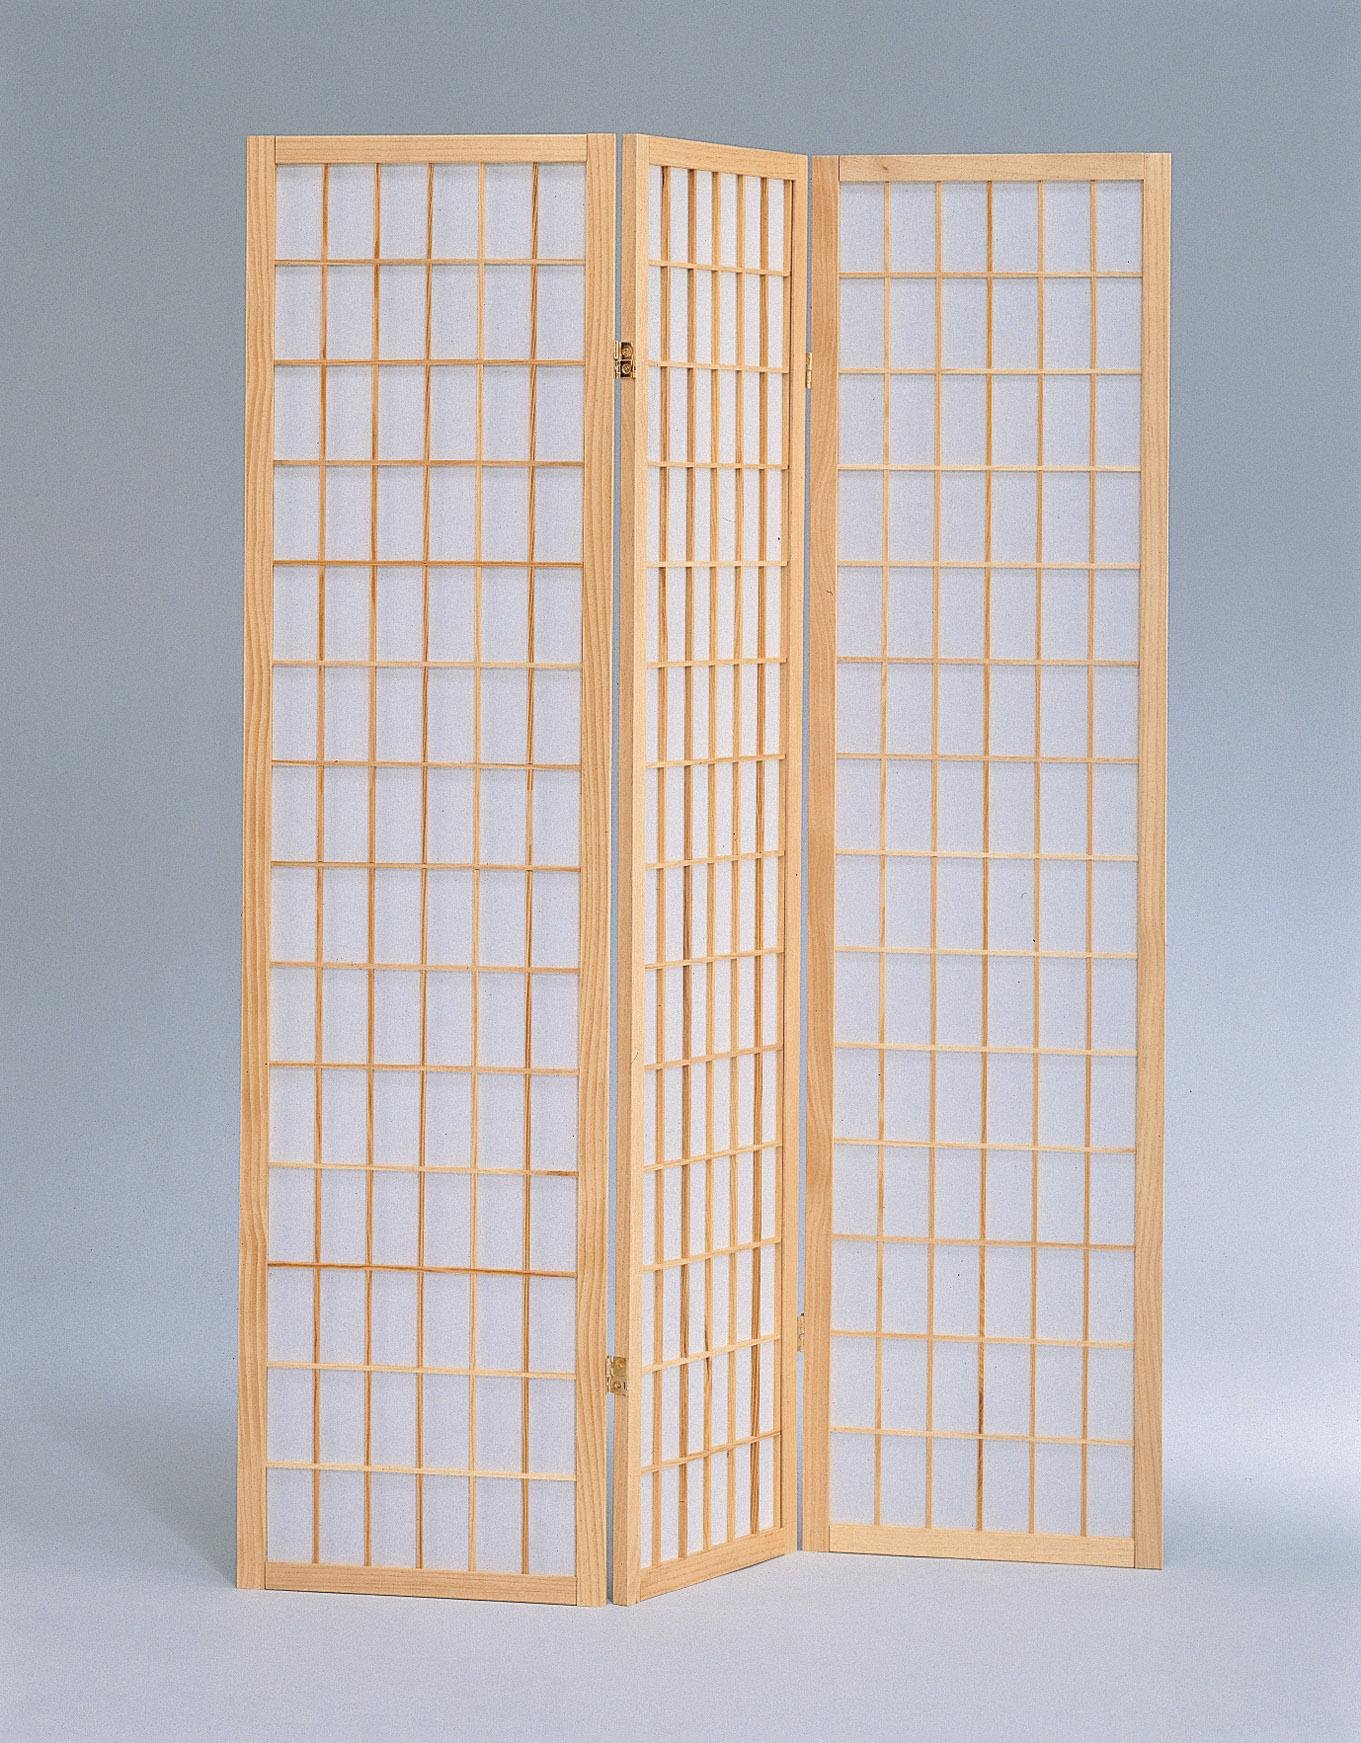 Milton Greens Stars 3-Panel Sam Room Divider, Natural by Milton Greens Stars